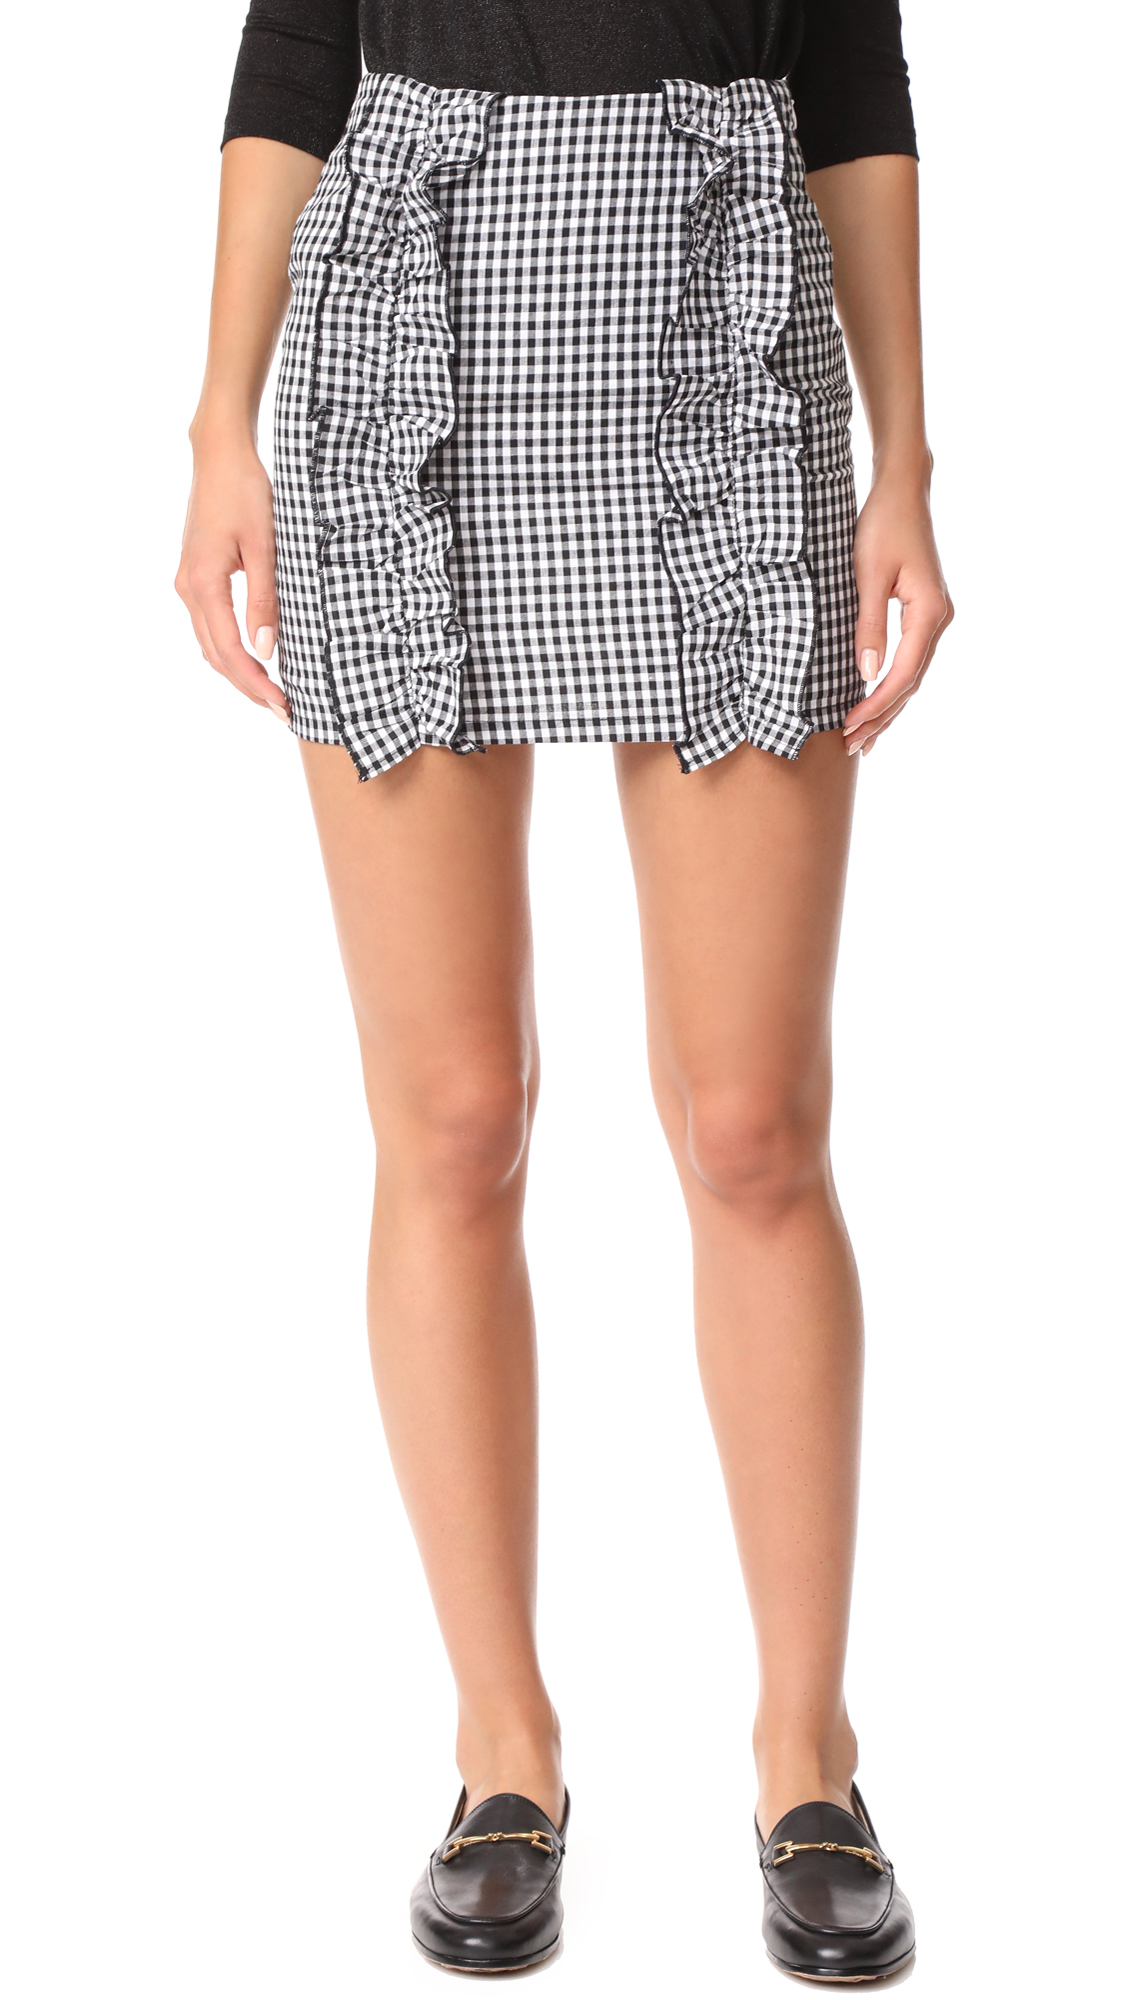 After Market Ruffle Mini Skirt - Black Gingham